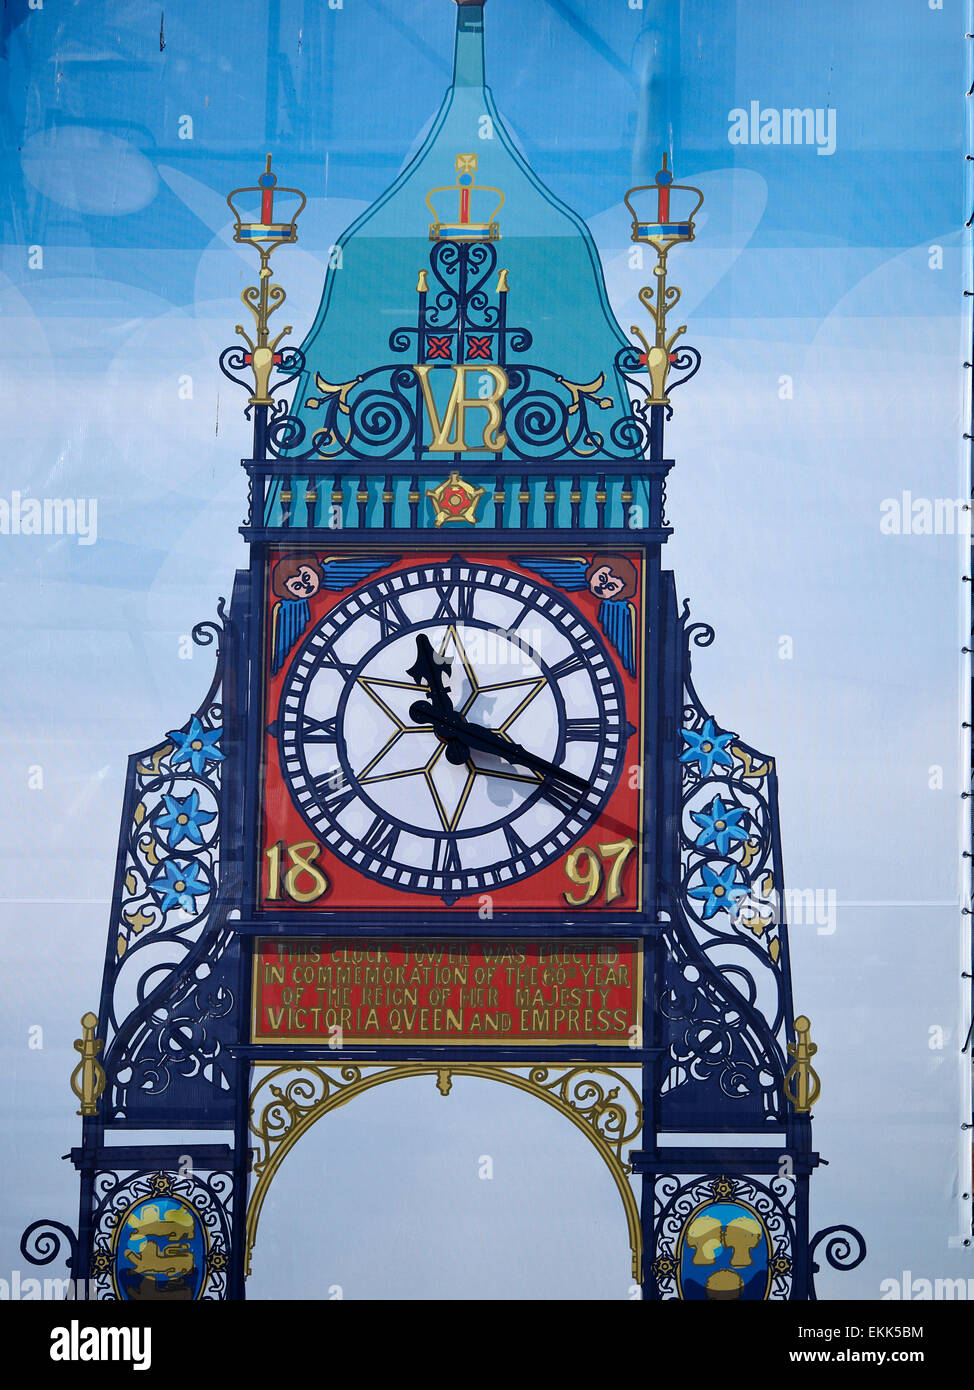 Chester, Cheshire, UK, 10th April 2015. Since January 5th the second best-known clock behind Big Ben is in scaffolding - Stock Image